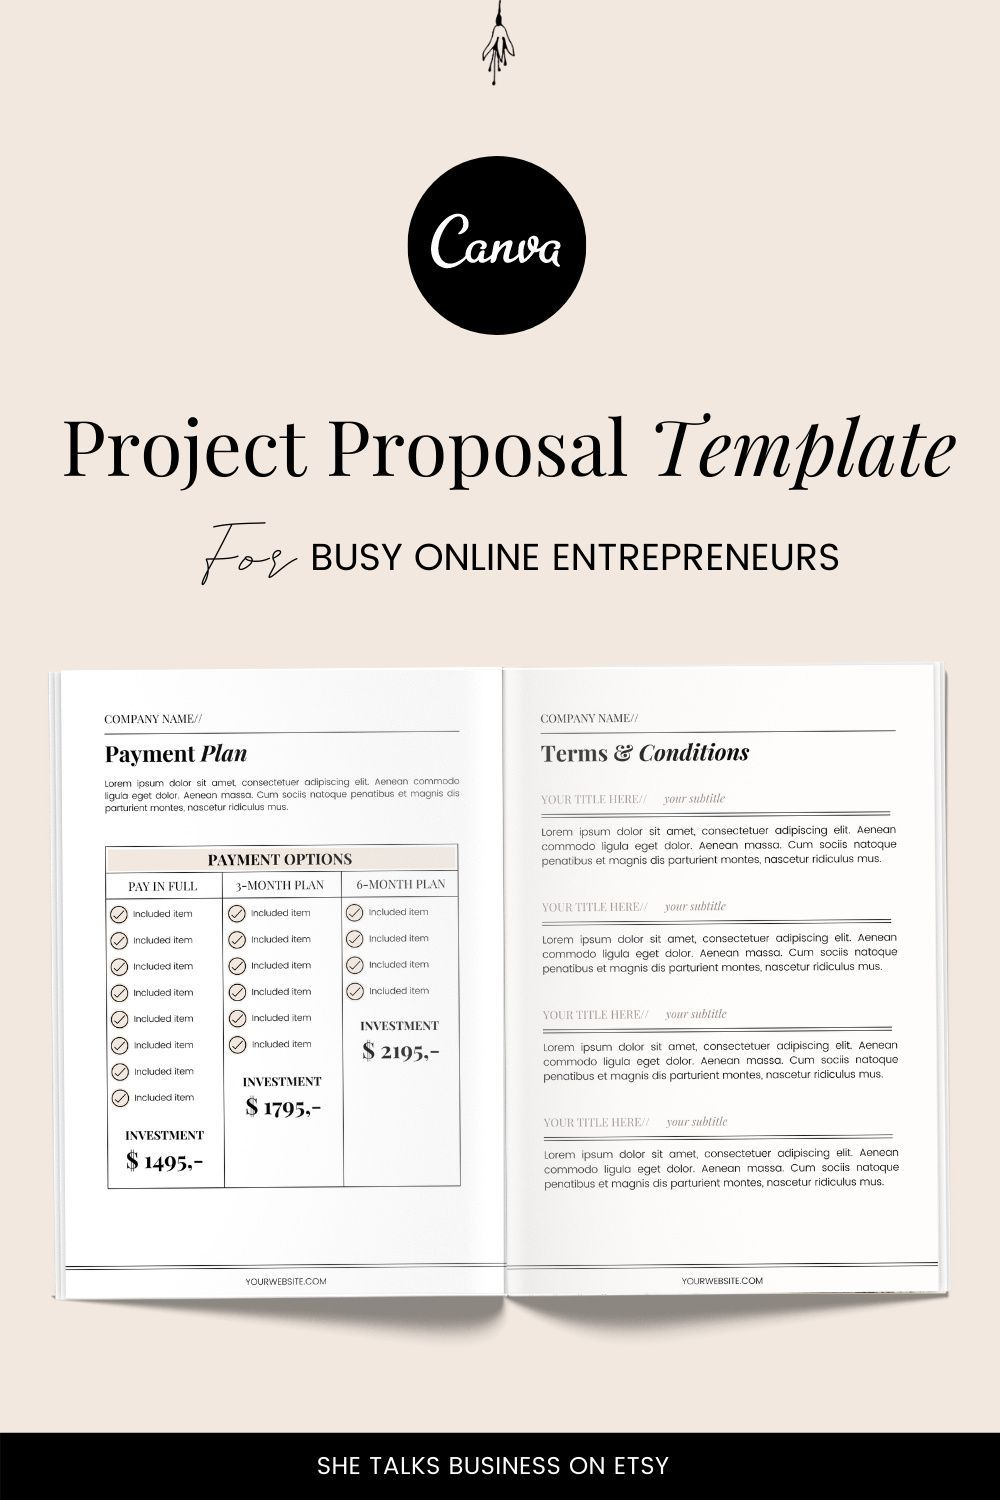 Project Proposal Template Project Proposal Canva Template Etsy